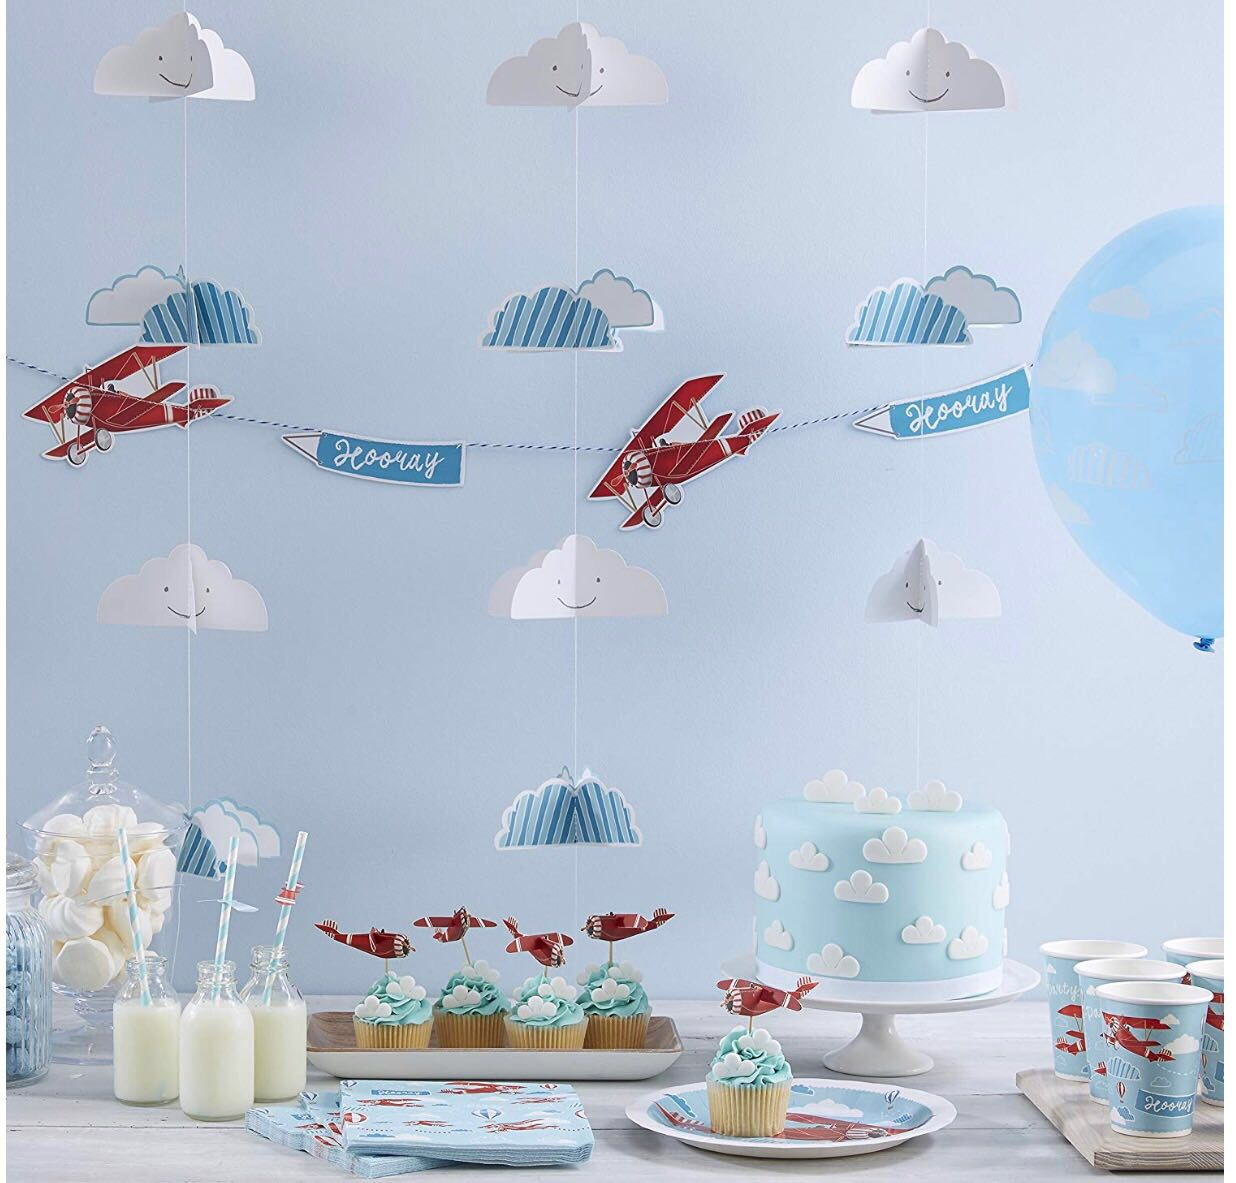 Planes - Our cute aviation themed prodcuts are the perfect decoration for any children's event or birthday celebration!Individual products available for sale include high flying bunting, high qulaity napkins, paper plates and matching cups.